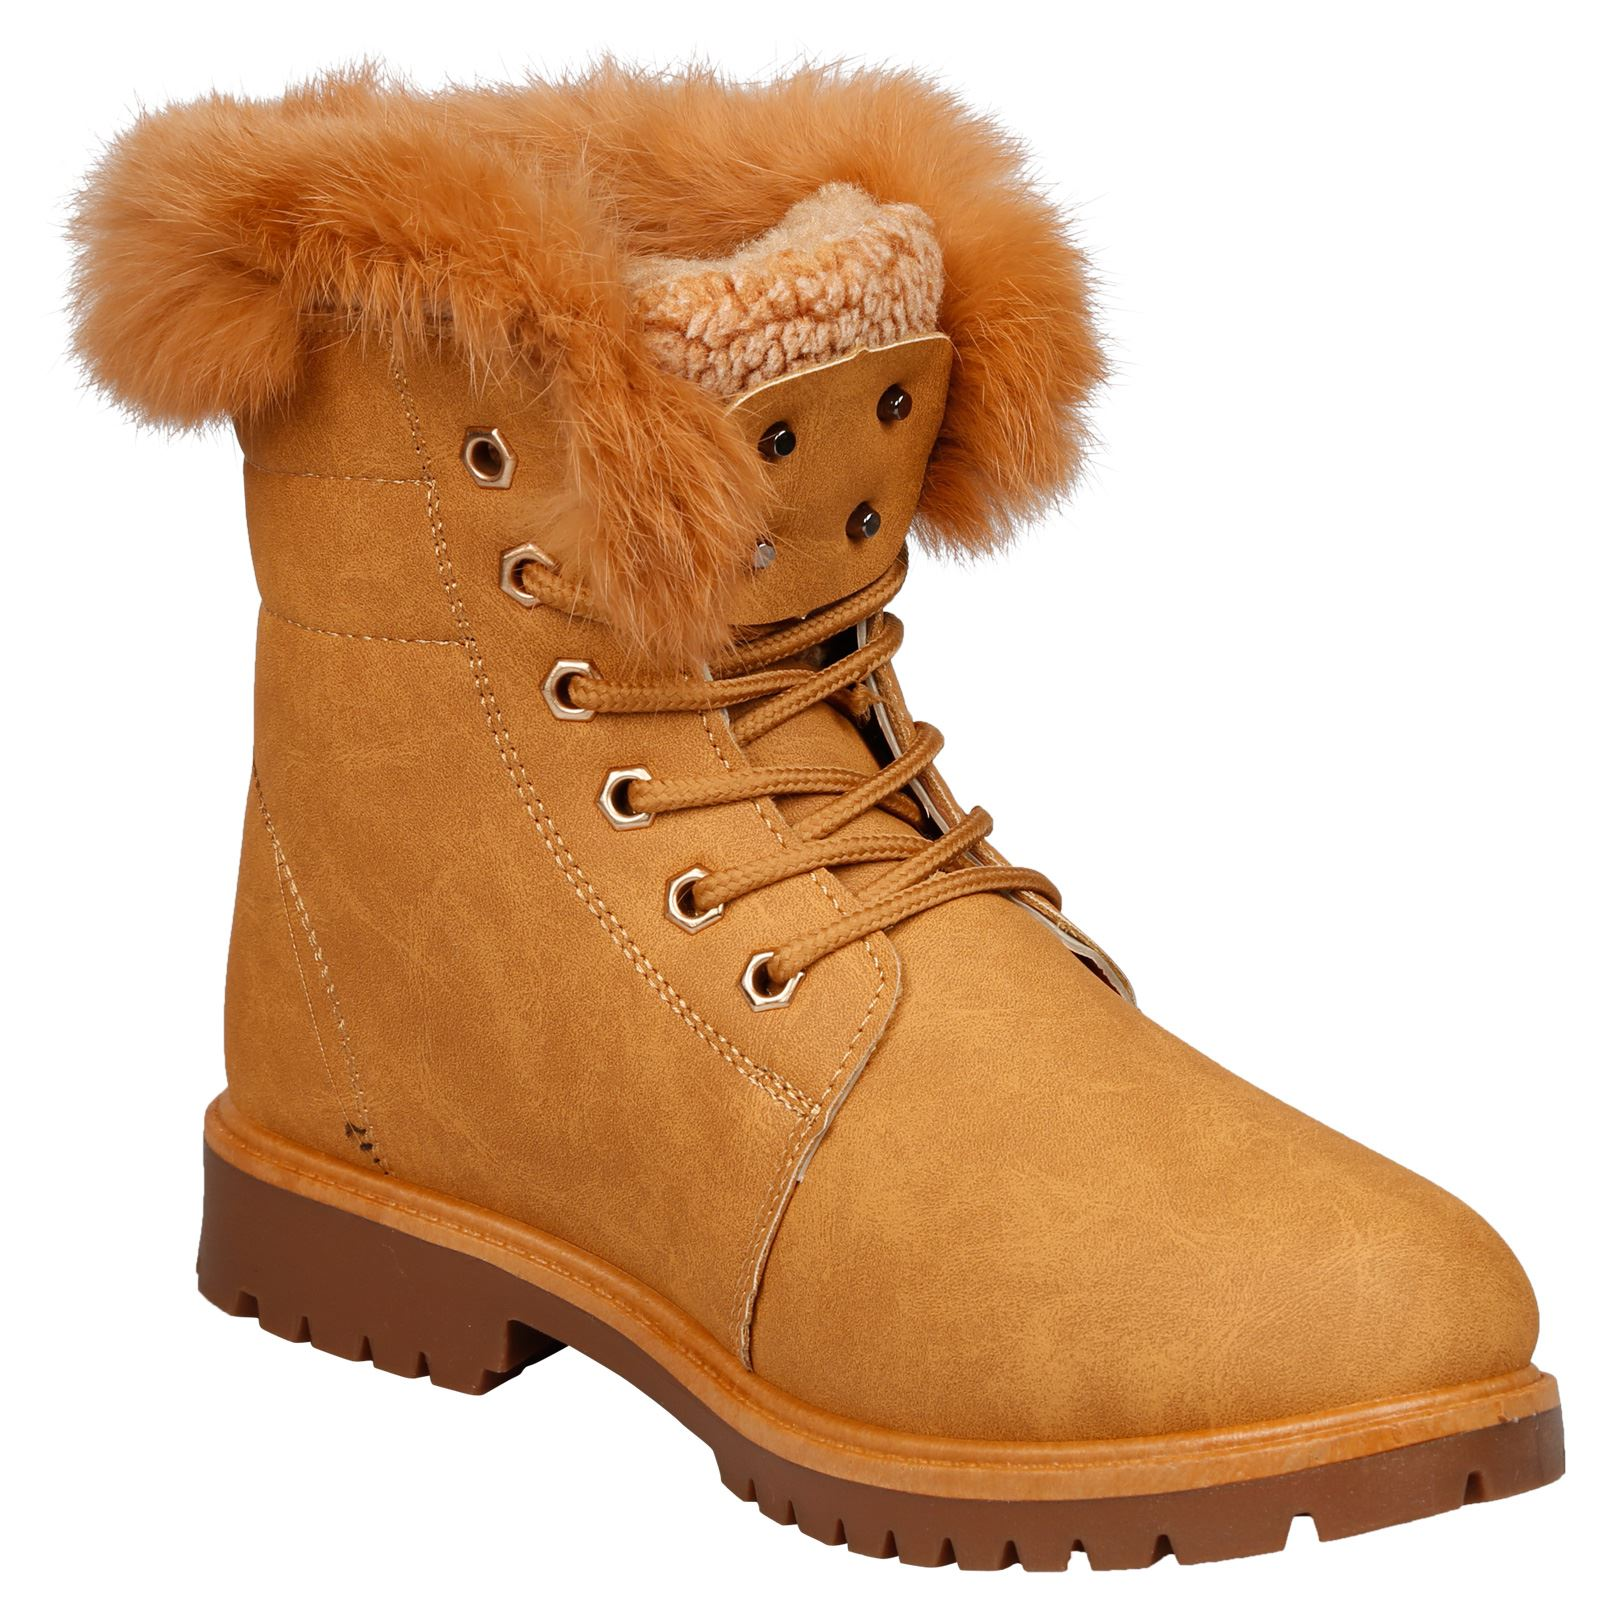 NEW-WOMEN-SHOES-LADIES-FUR-LINED-LOW-HEEL-LACE-UP-ANKLE-BOOTS-CASUAL-STYLE-SIZE thumbnail 13